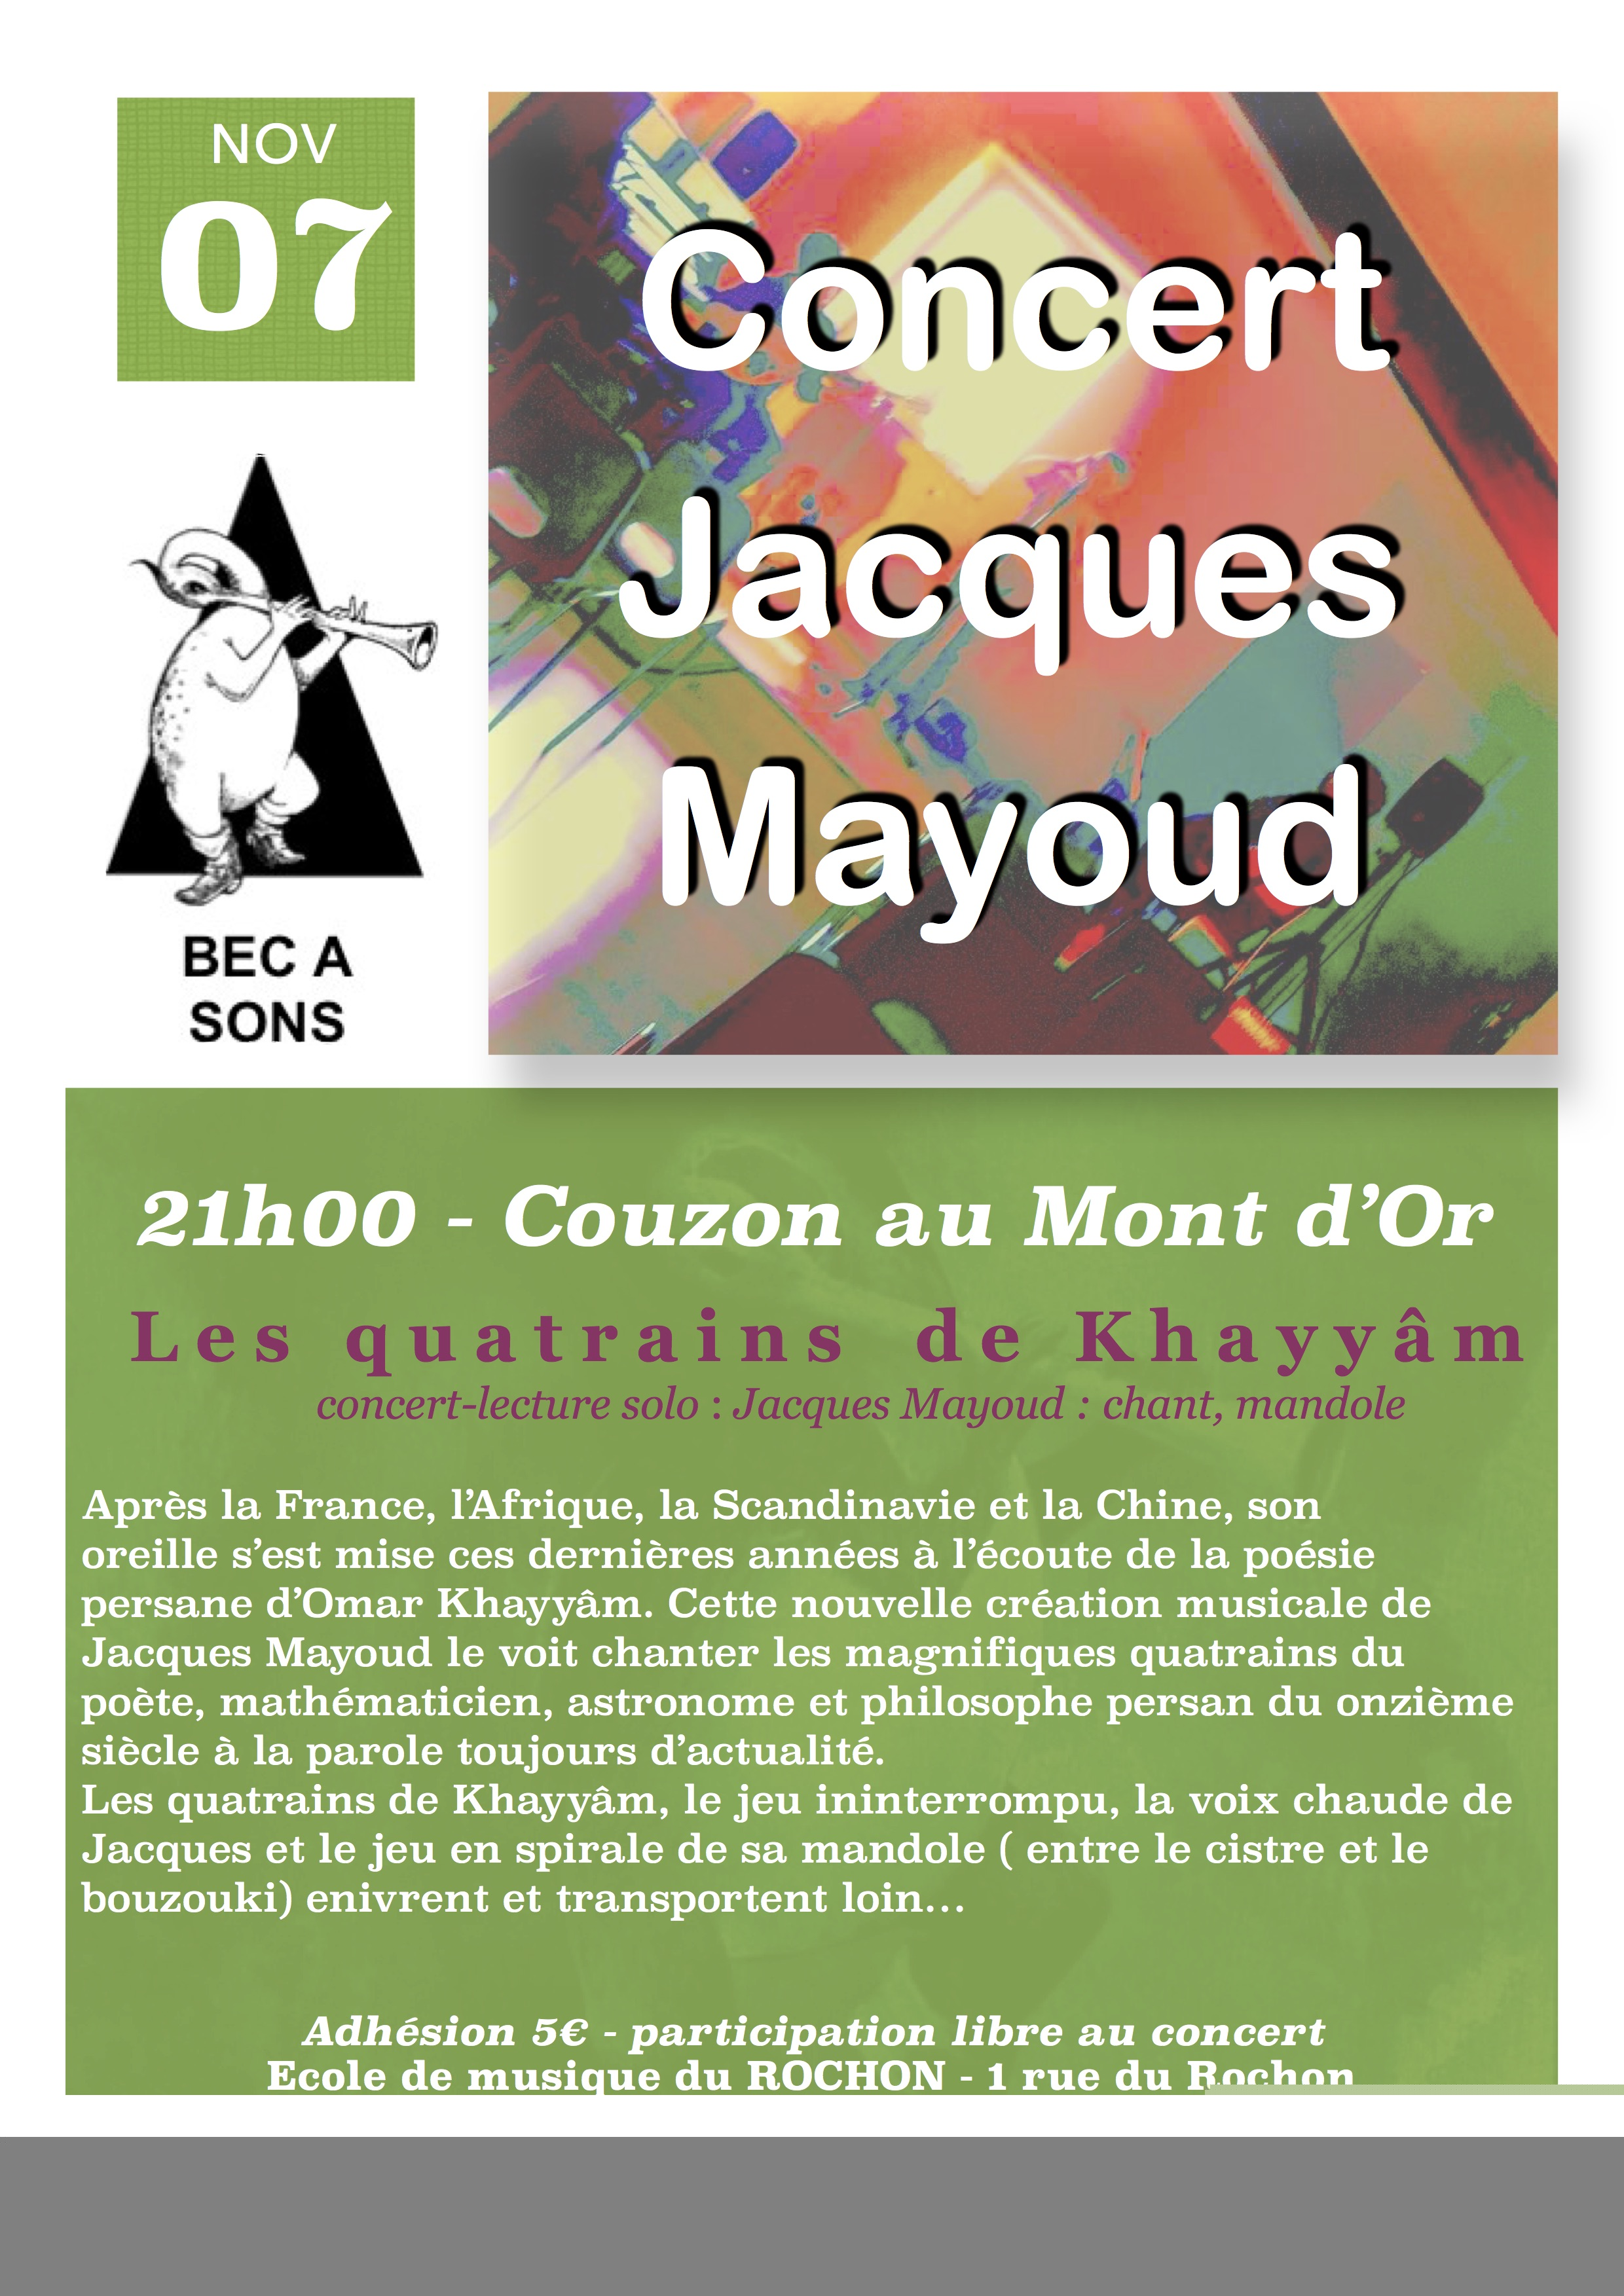 Concert Jacques Mayoux 2015.jpg